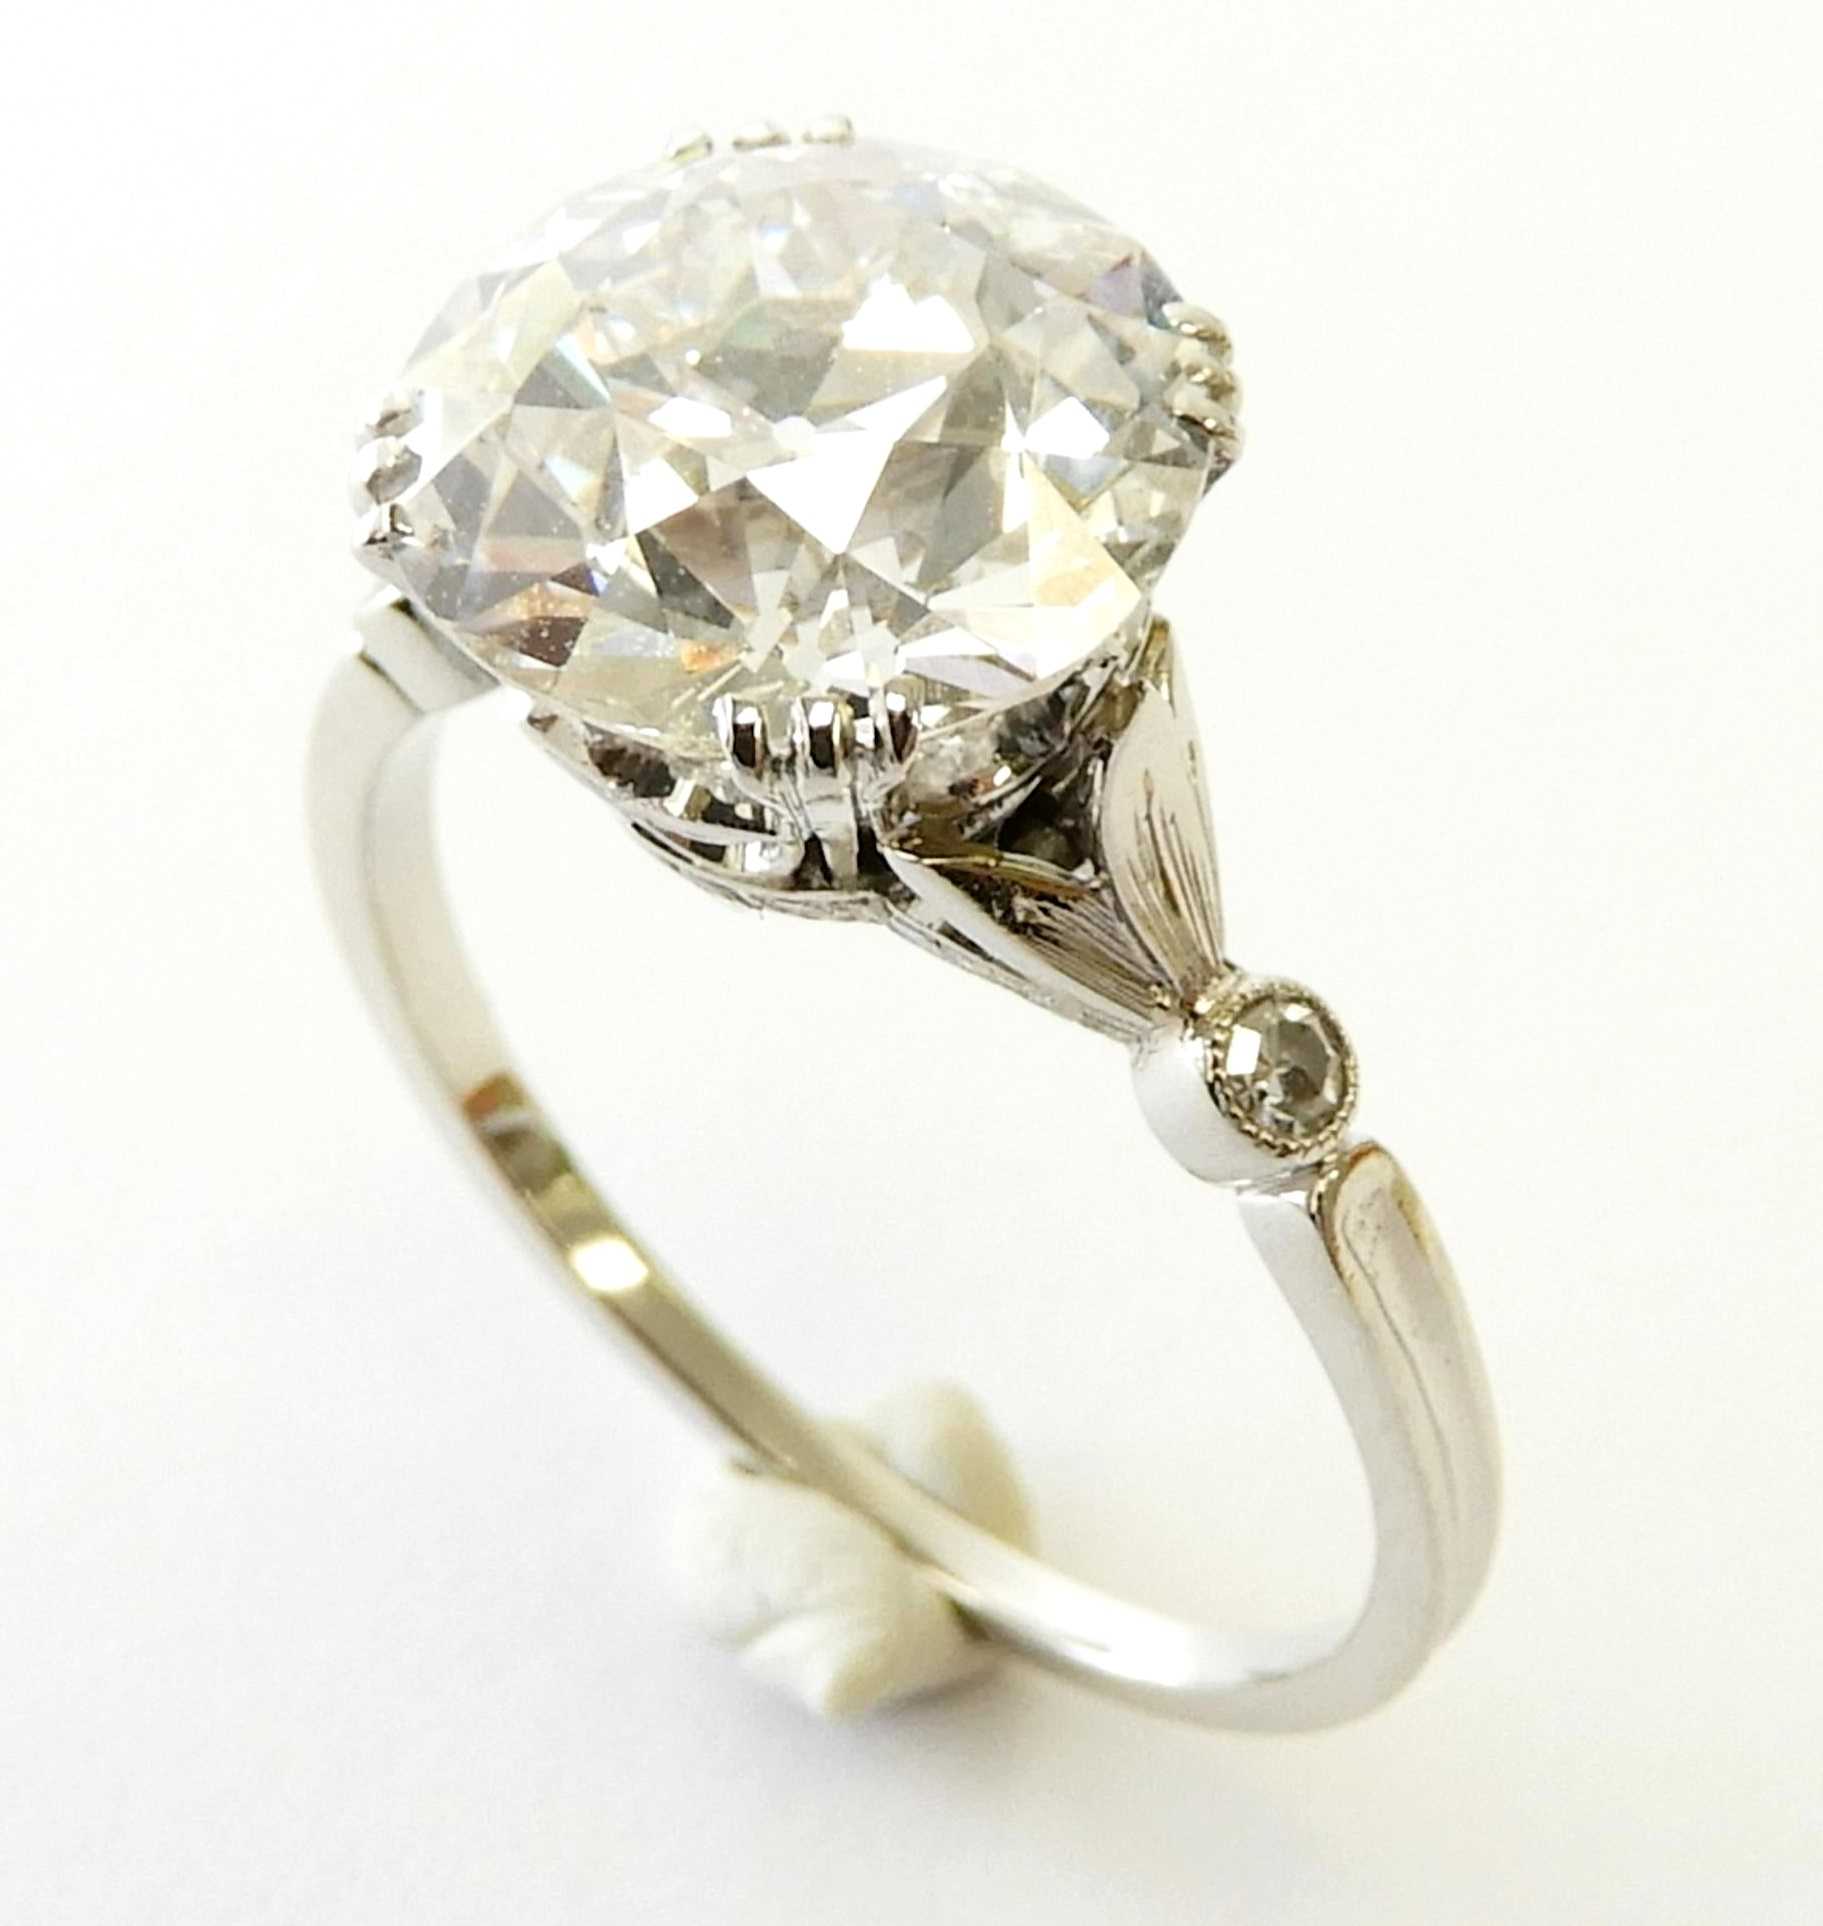 2. Lot 88. 4-carat Diamond And Platinum Engagement Ring From The Estate Of Rosalie Coe Weir. Sold For $78,000 ($50,000-80,000)